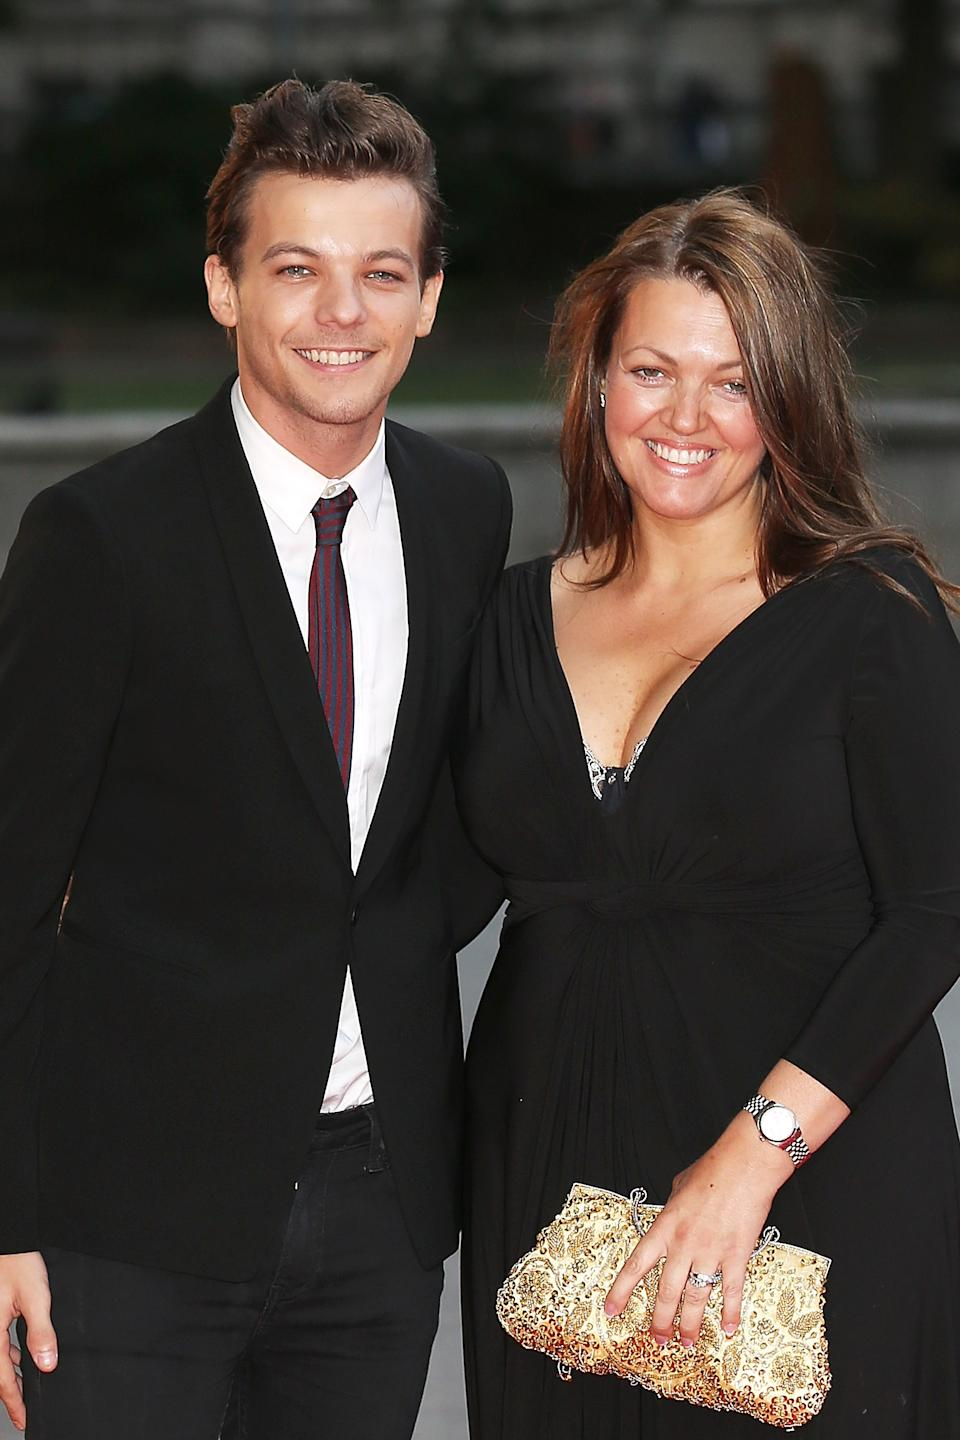 Louis Tomlinson's mother Johannah died in 2016. (Photo by Dave J Hogan/Getty Images)